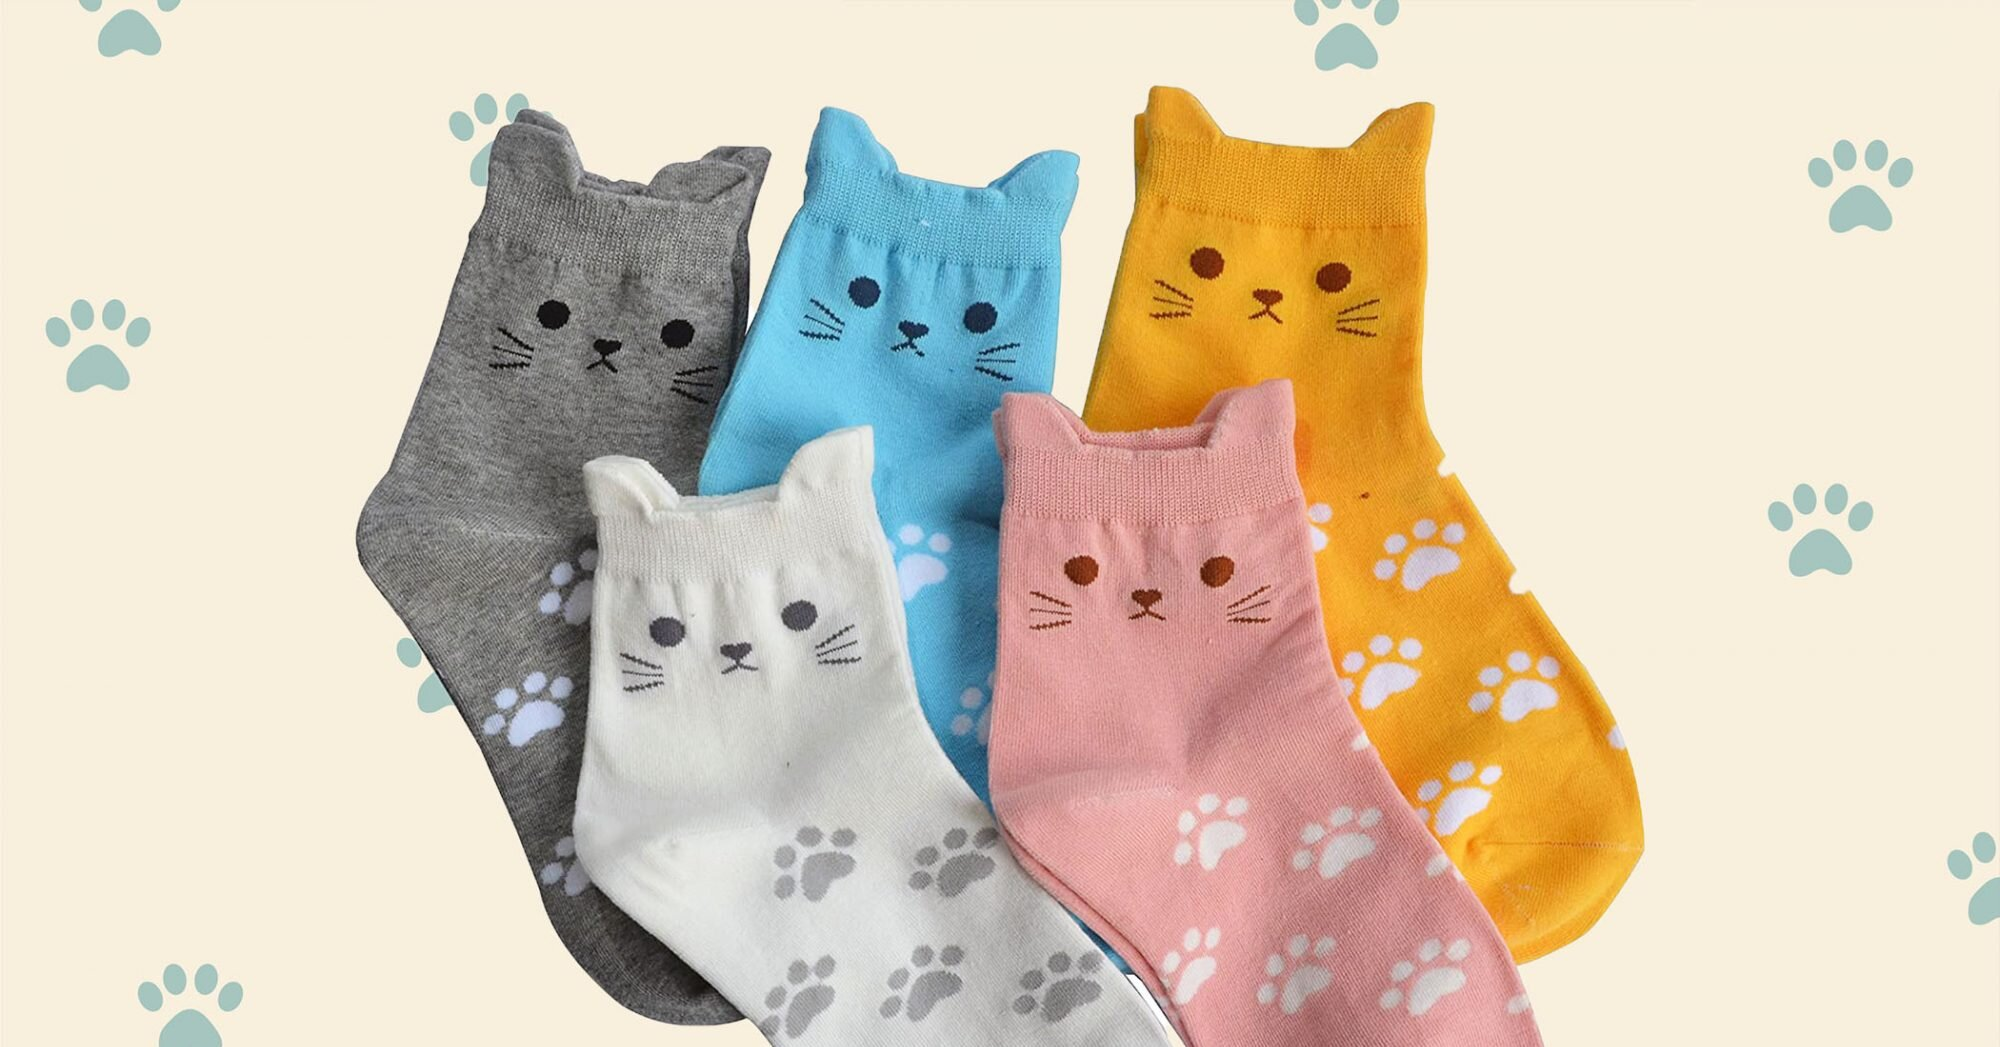 Are you kitten us? These gifts for cat lovers are too good.